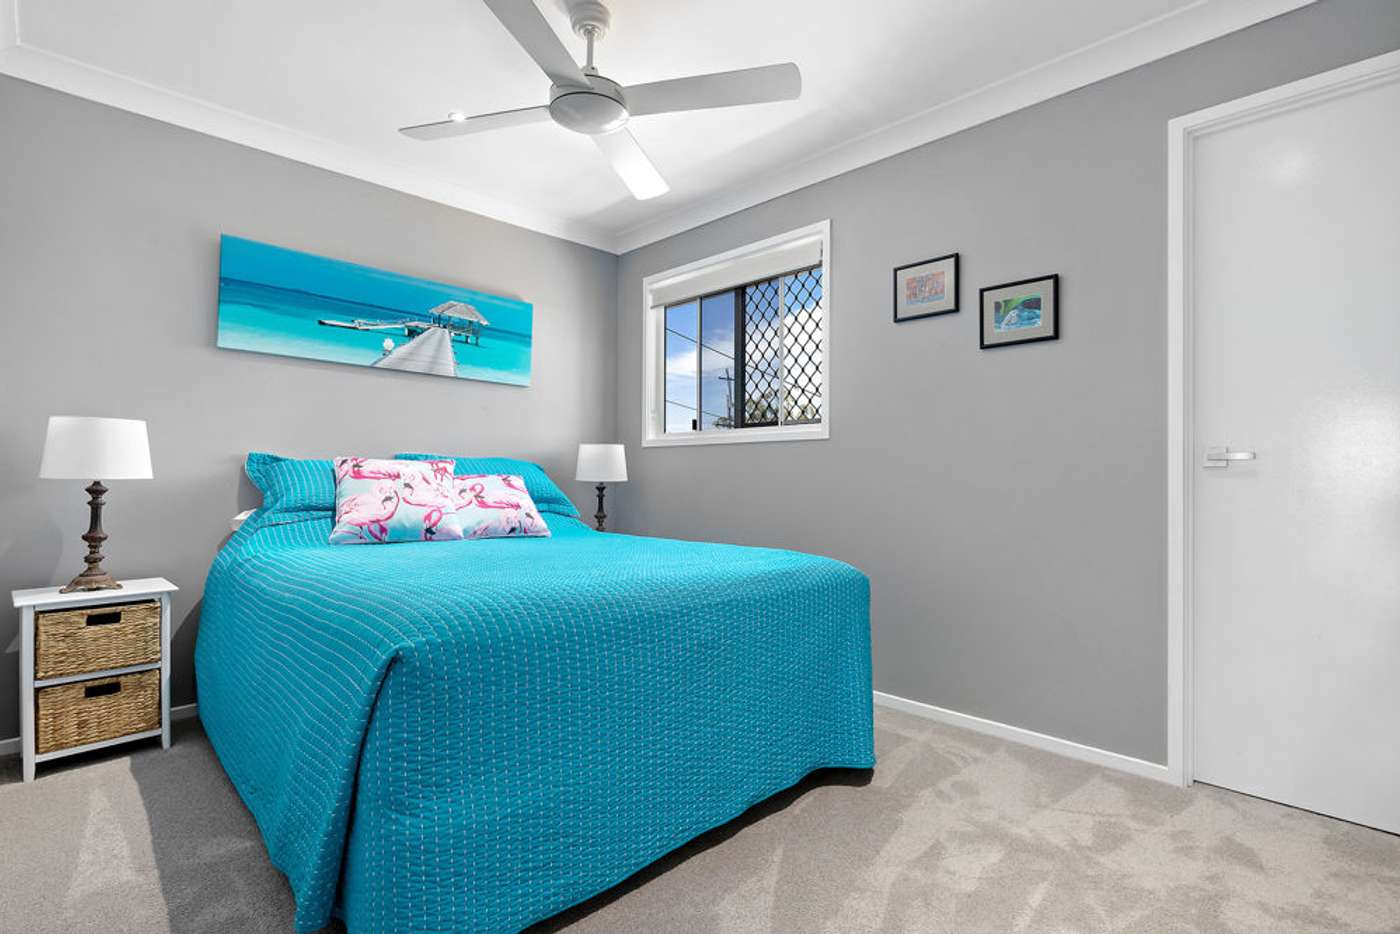 Sixth view of Homely house listing, 64 Chatham Street, Margate QLD 4019